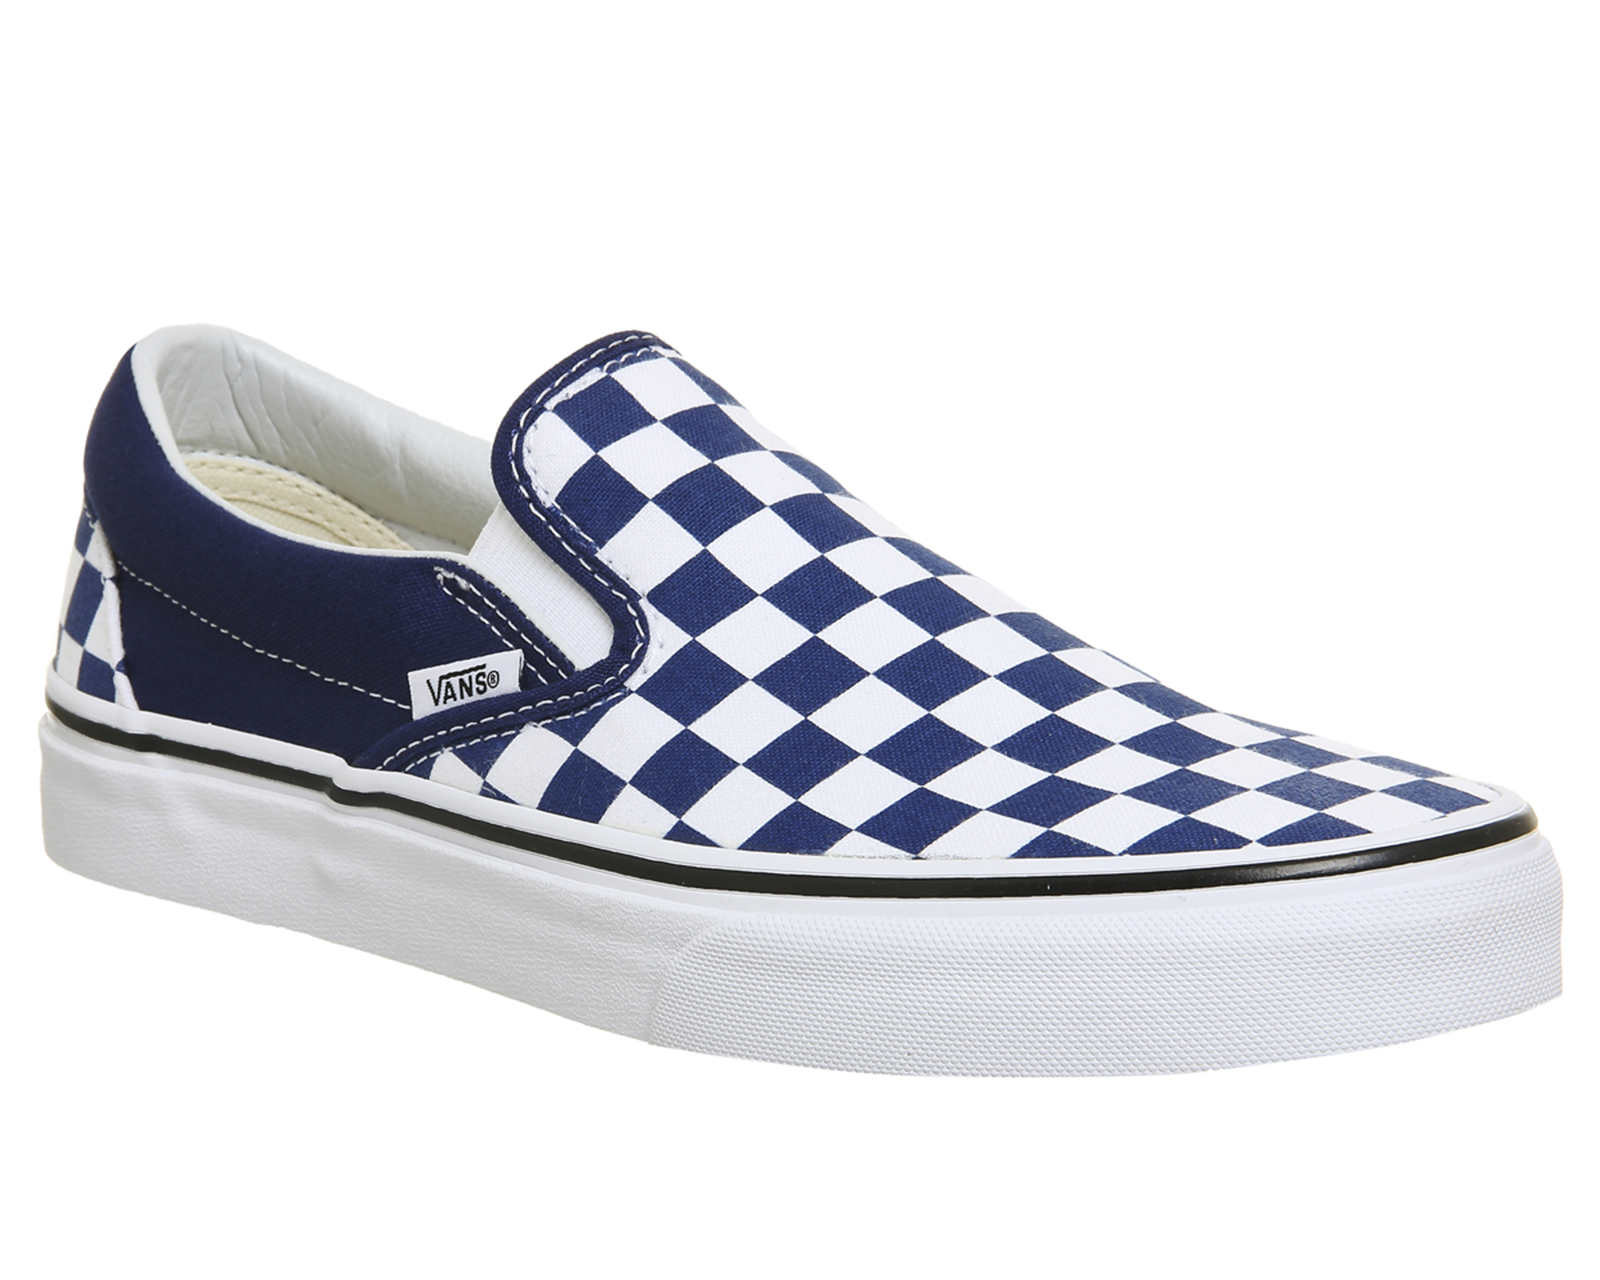 bd5e3075aceee Sentinel Vans Vans Classic Slip On Trainers ESTATE BLUE WHITE CHECKERBOARD  Trainers Shoes